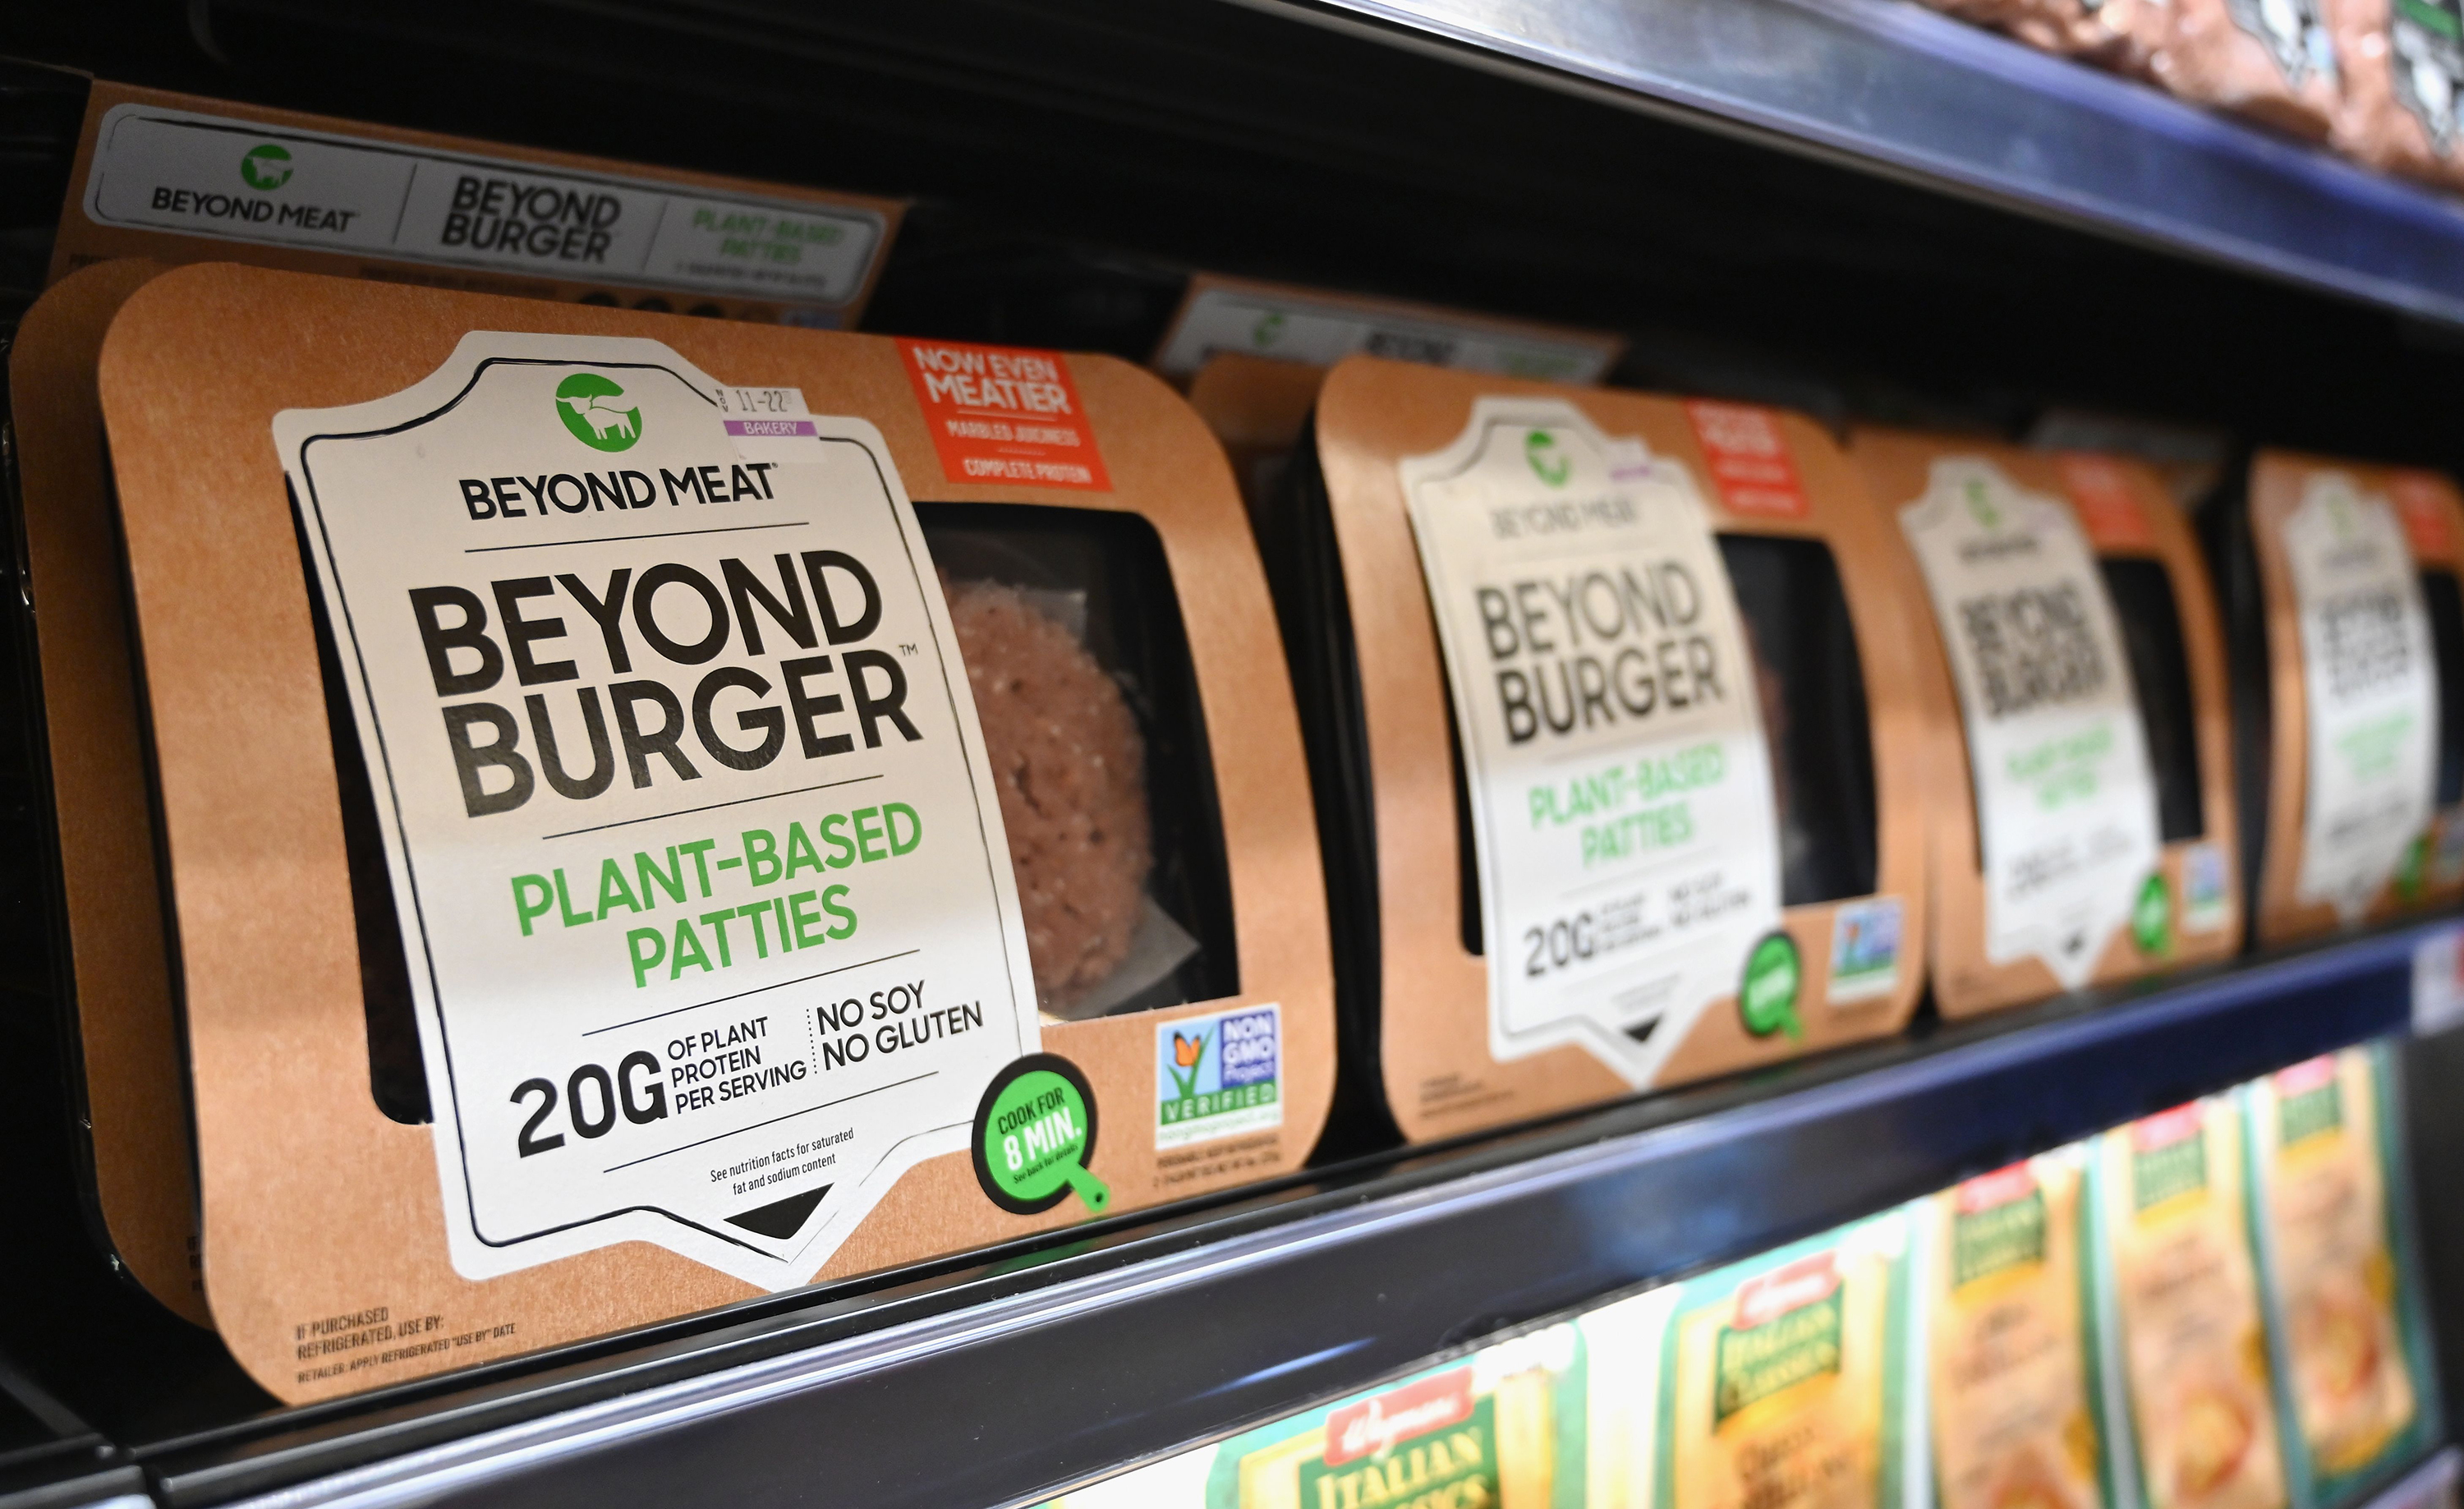 Beyond Meat strikes partnerships with McDonald's and Yum Brands